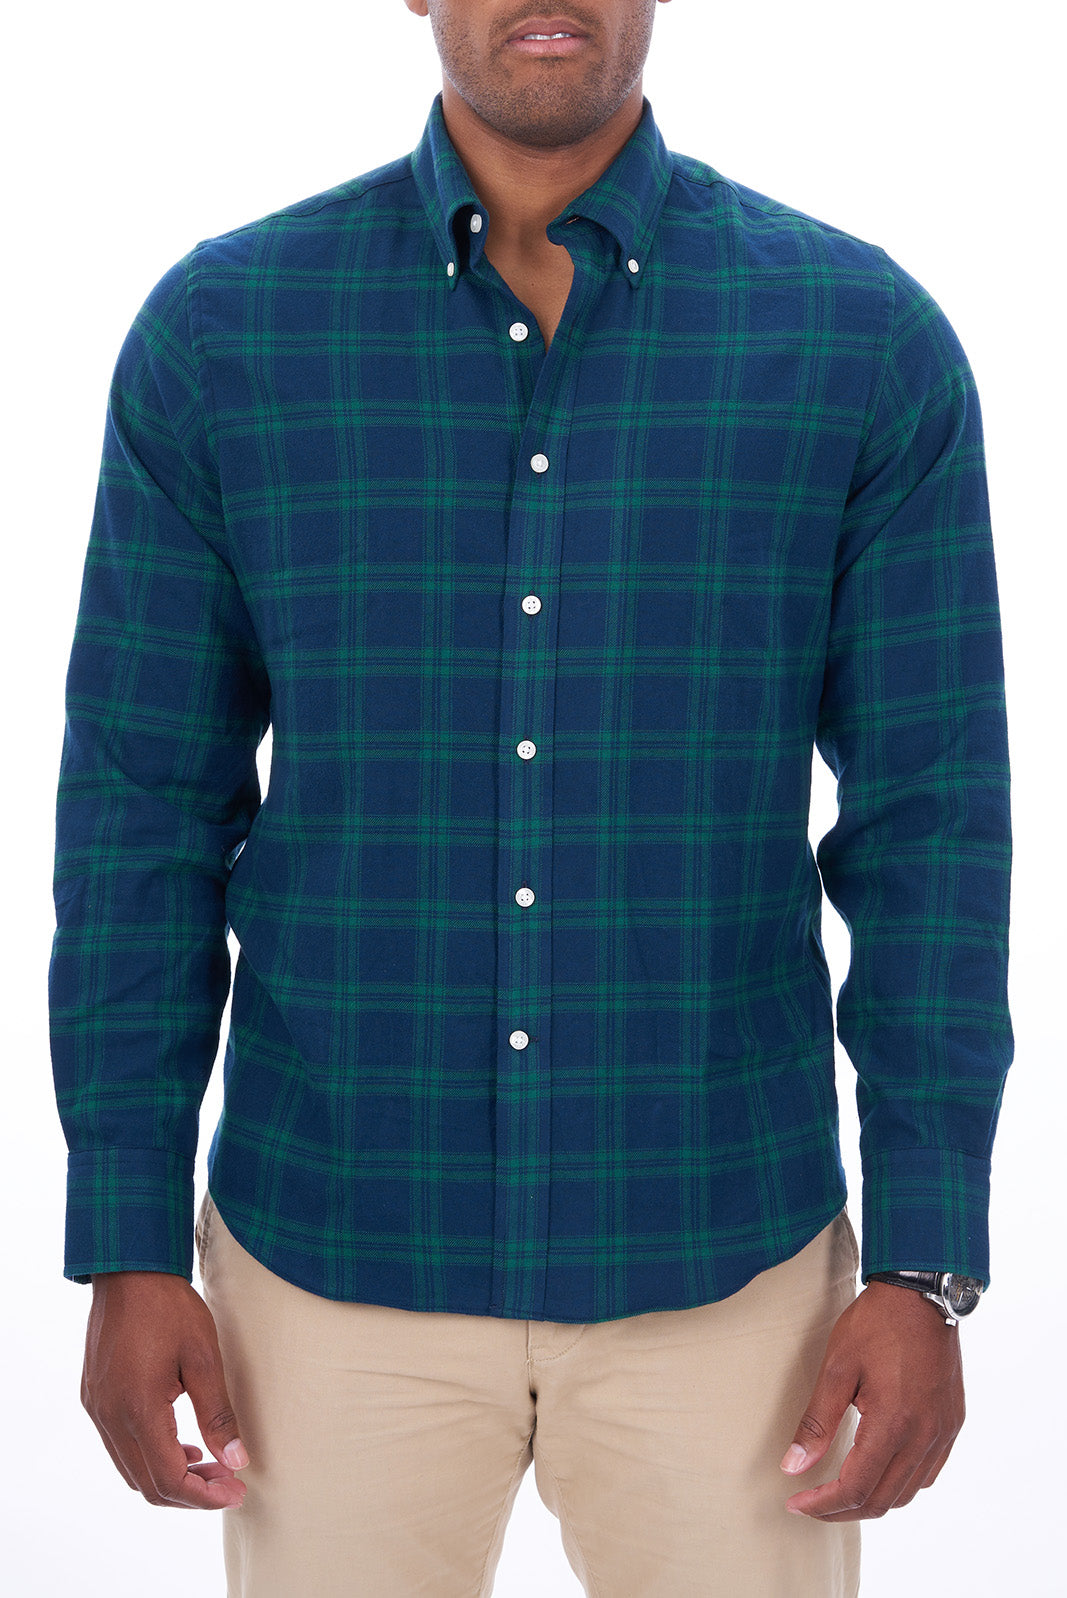 Green Tartan Plaid: Semi-Spread Collar, Barrel Cuff